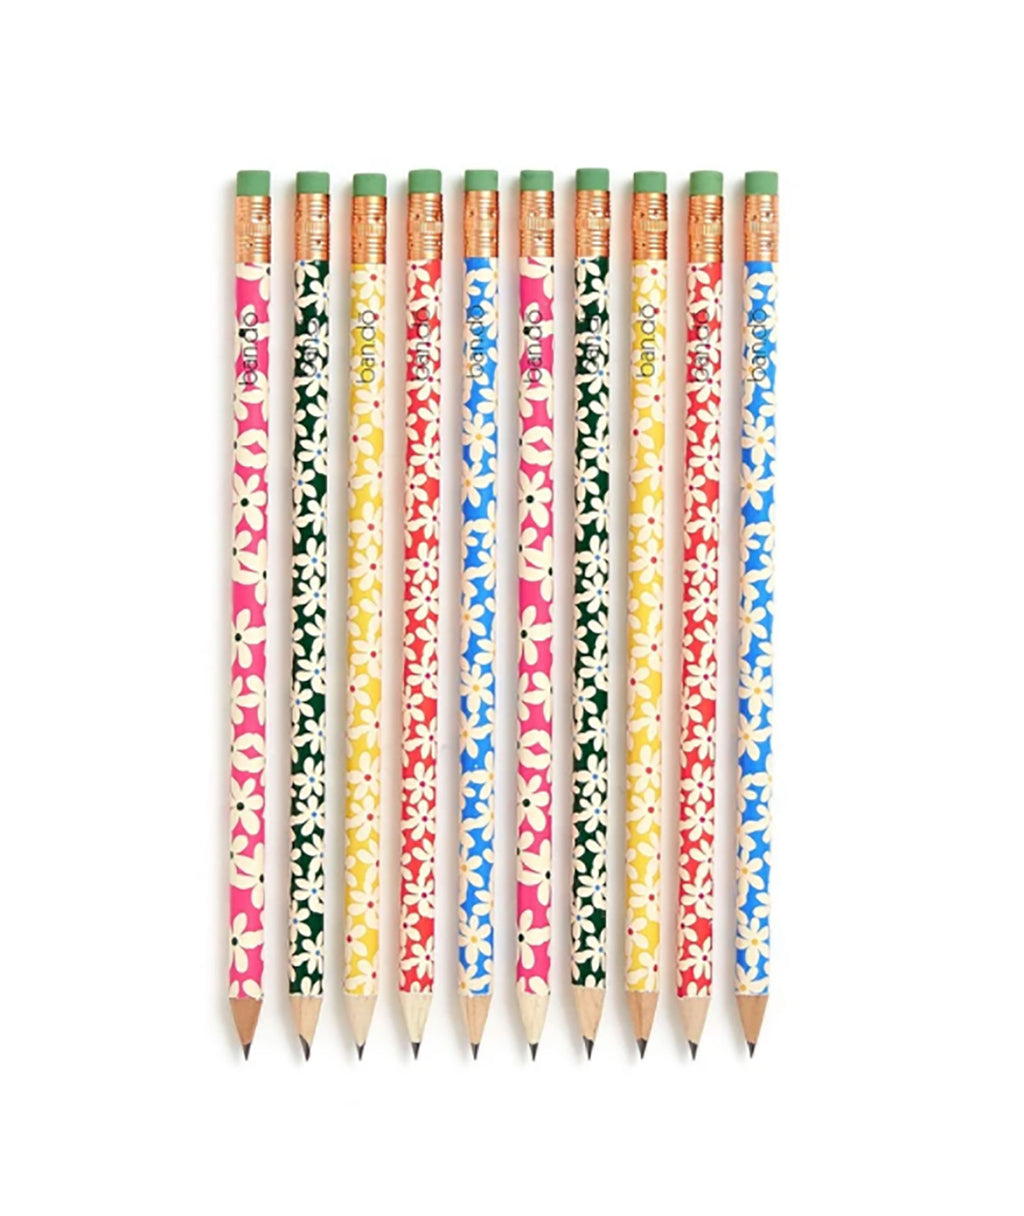 Ban.do Write On Daisies Pencil Set